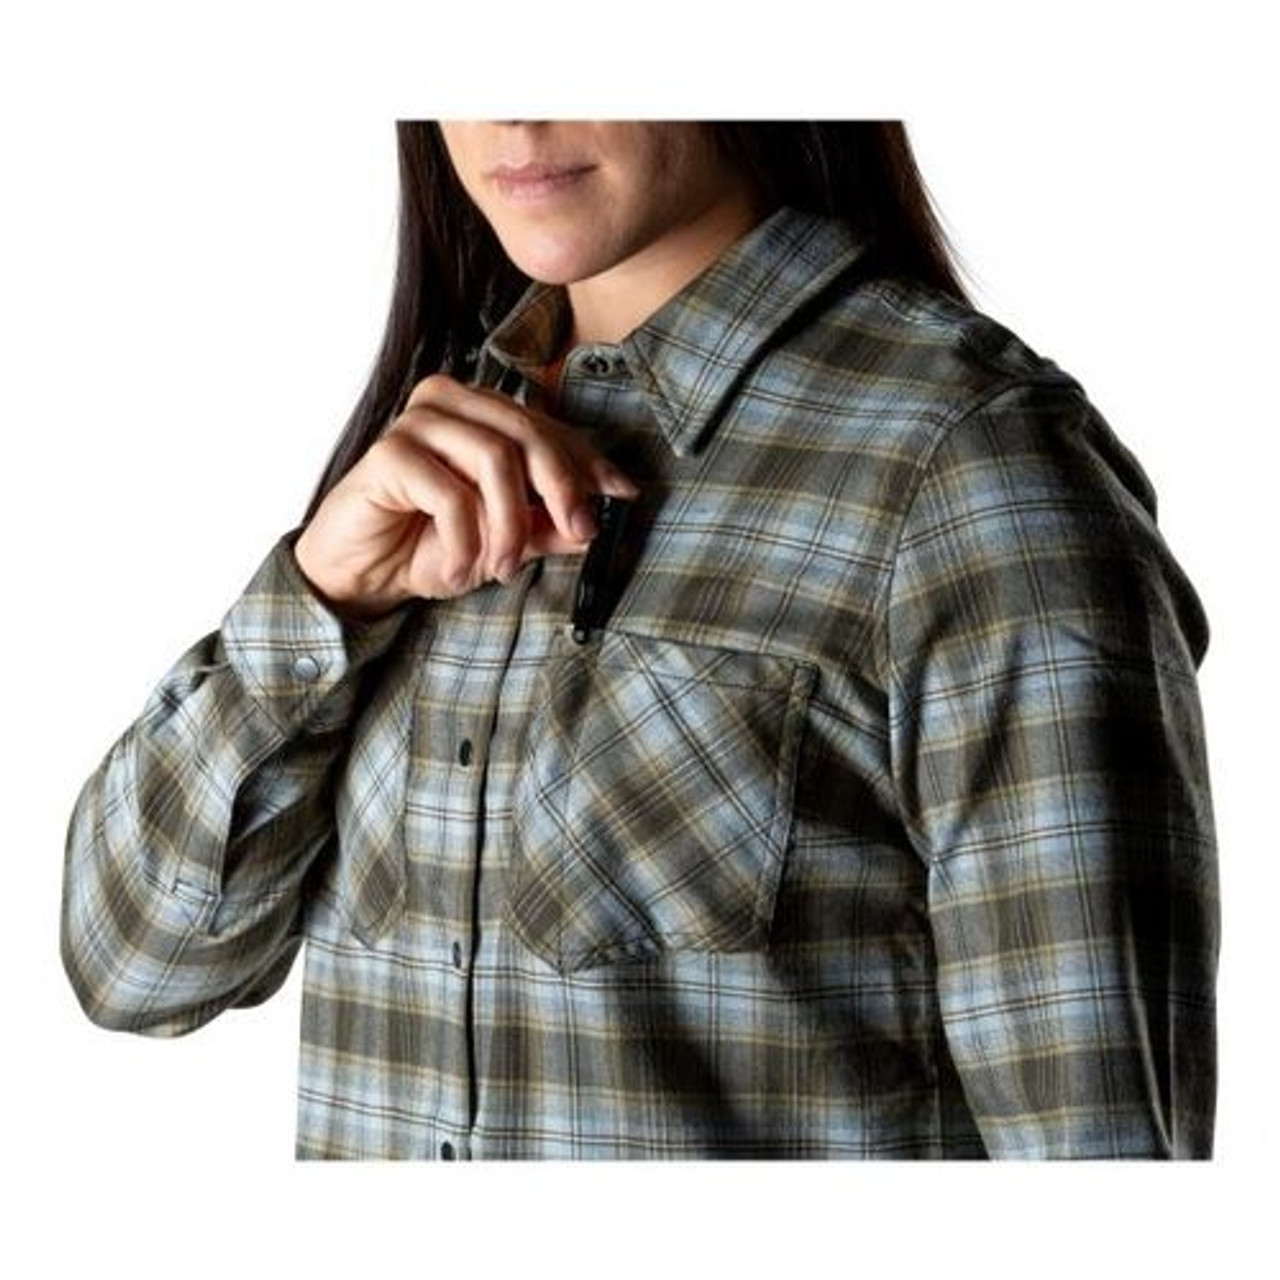 5.11 Tactical 62391 HANNA FLANNEL, Casual or Uniform Button-Down Long Sleeve Shirt, Polyester/Elastane